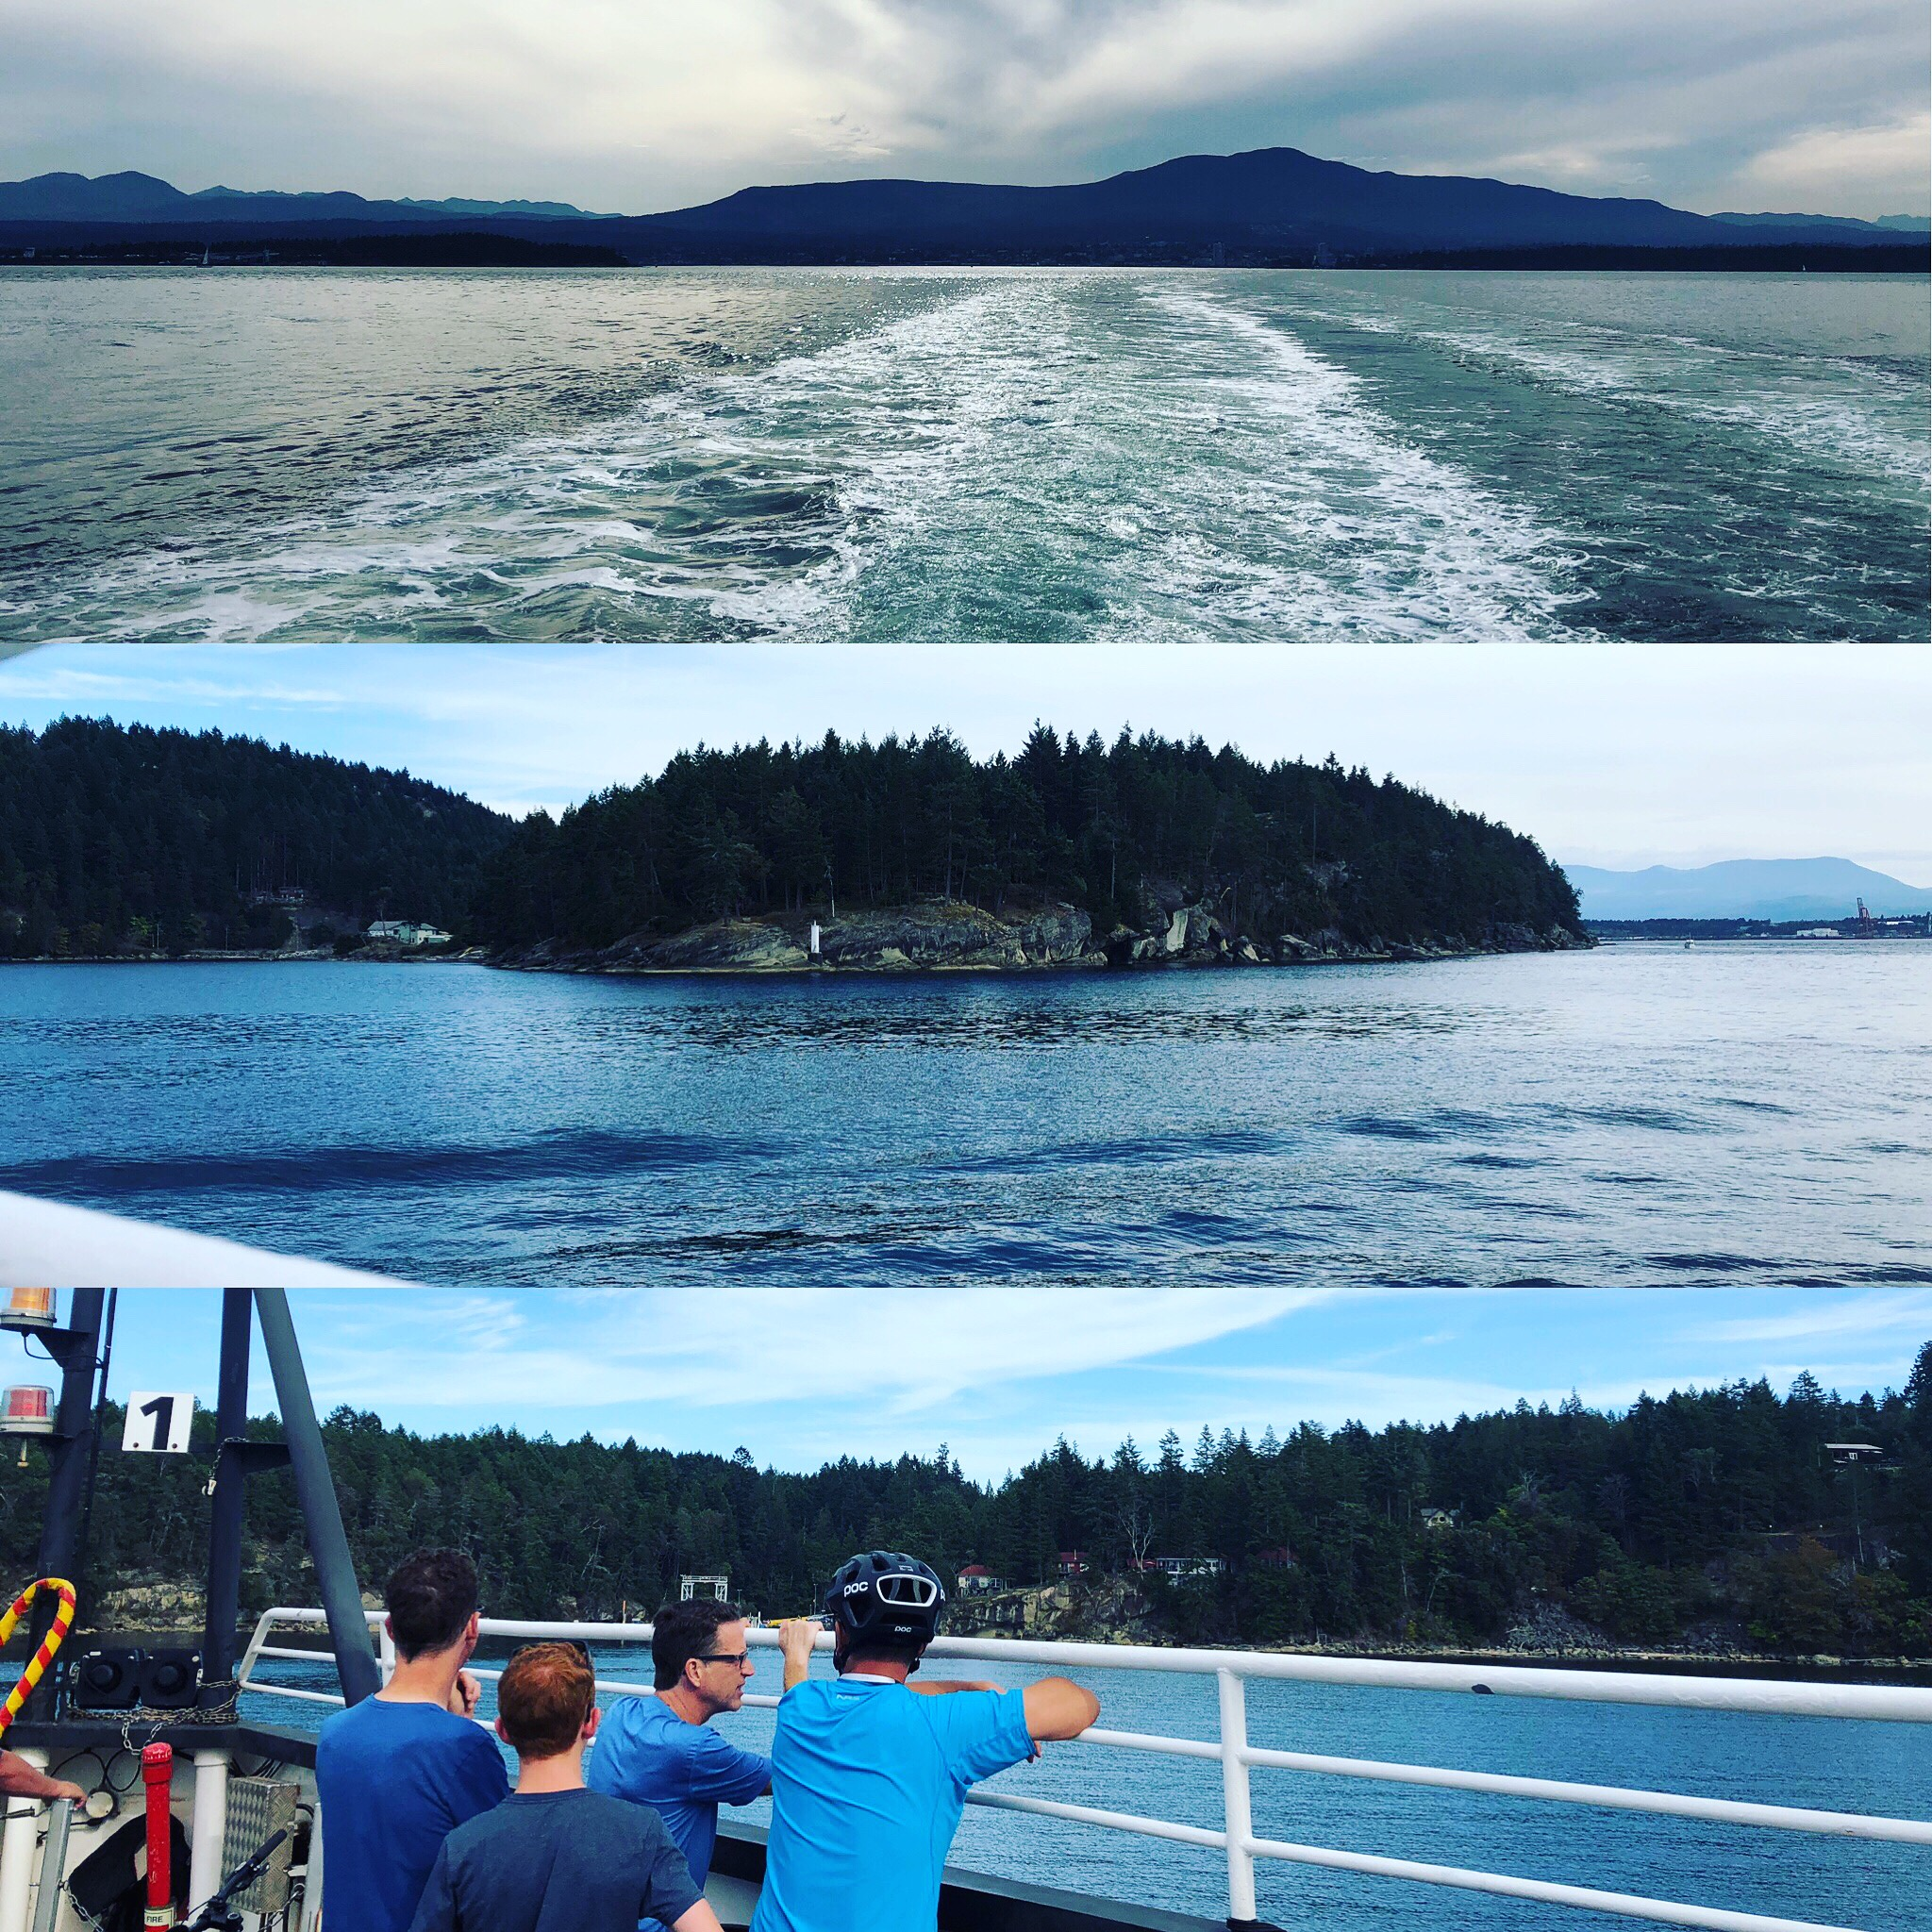 Aug 29 2019 - On our way to Gabriola Island for Cultivate 2019!